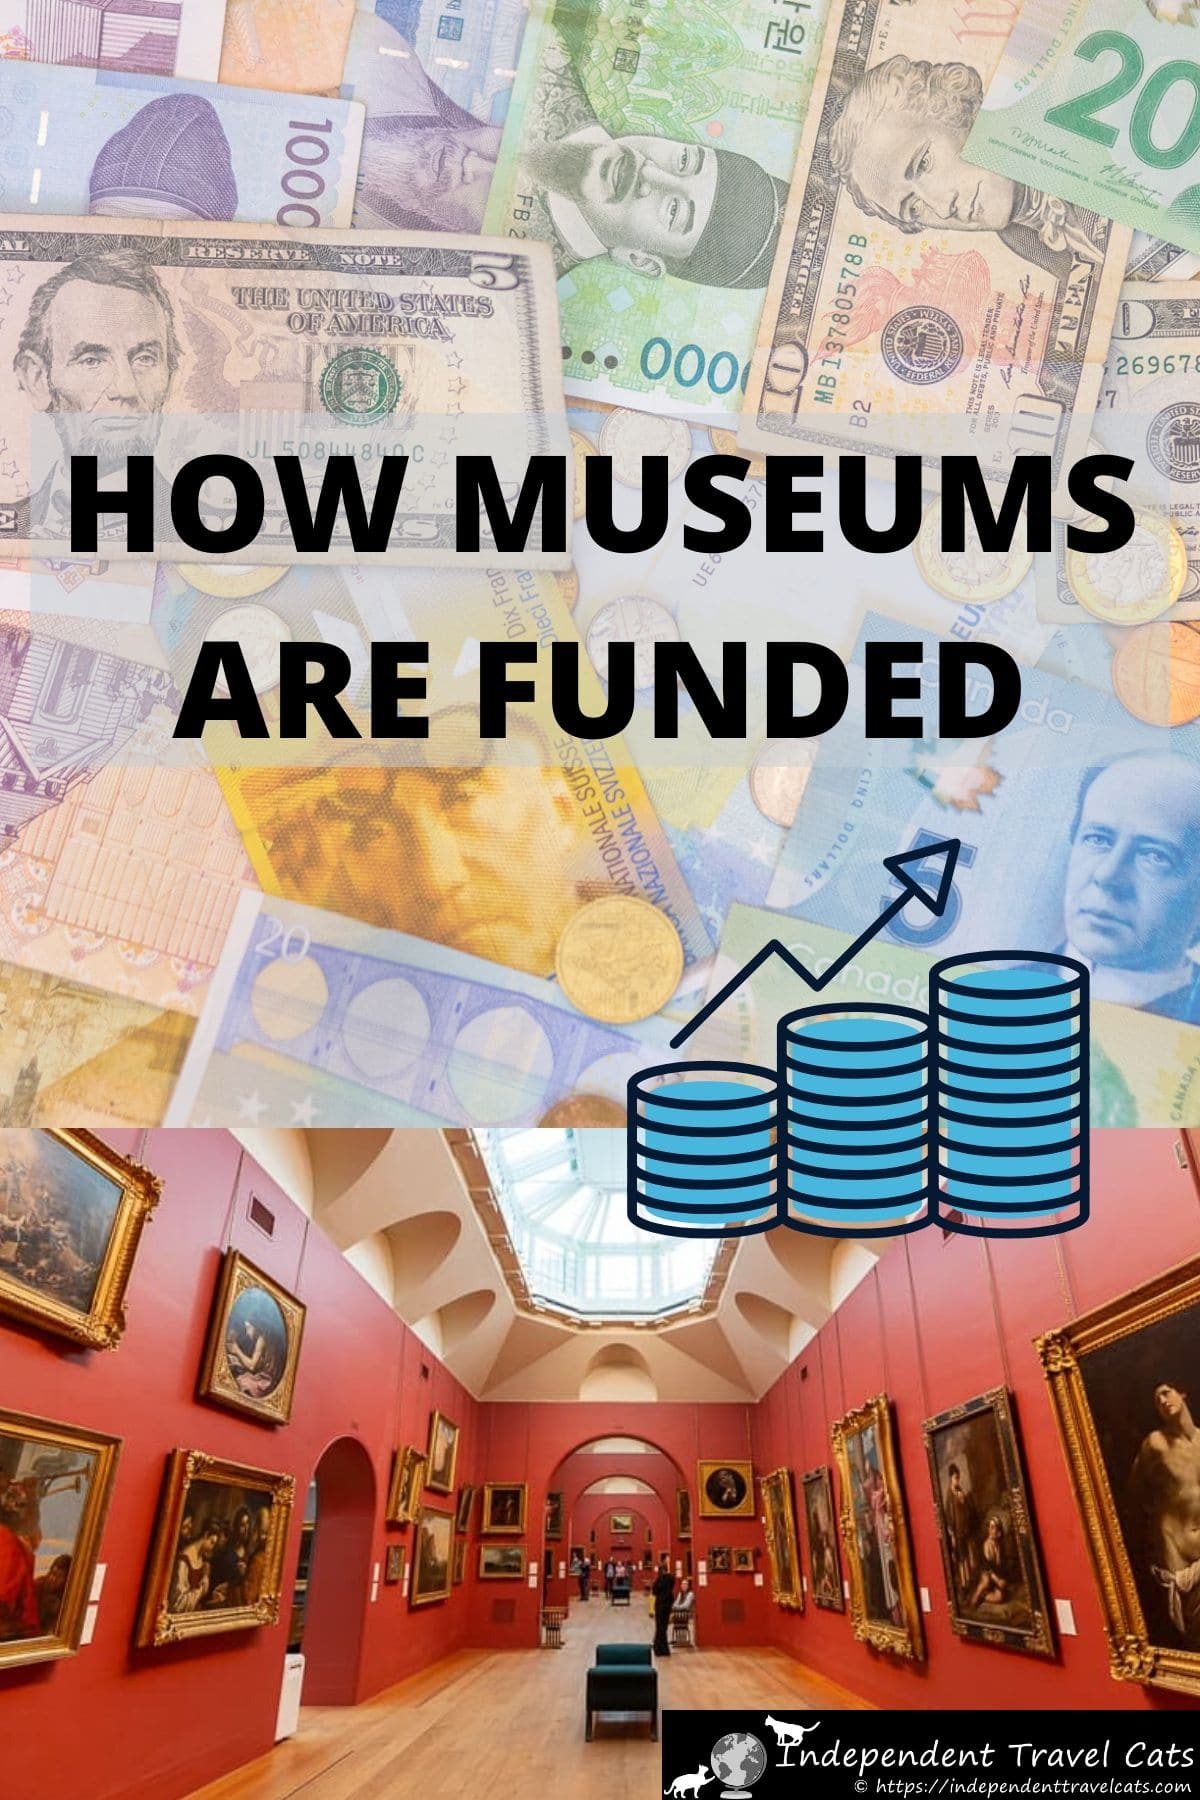 An exploration of how much it costs to run a museum, how museums are funded, and the importance of visitor donations to museums in the United States of America and the United Kingdom. Examines public funding, earned income, private donations, and deaccessioning. Discusses differ ways that visitors can donate and support the museums they love. Includes research and case examples. #museums #museumfunding #privatesupport #donations #charity